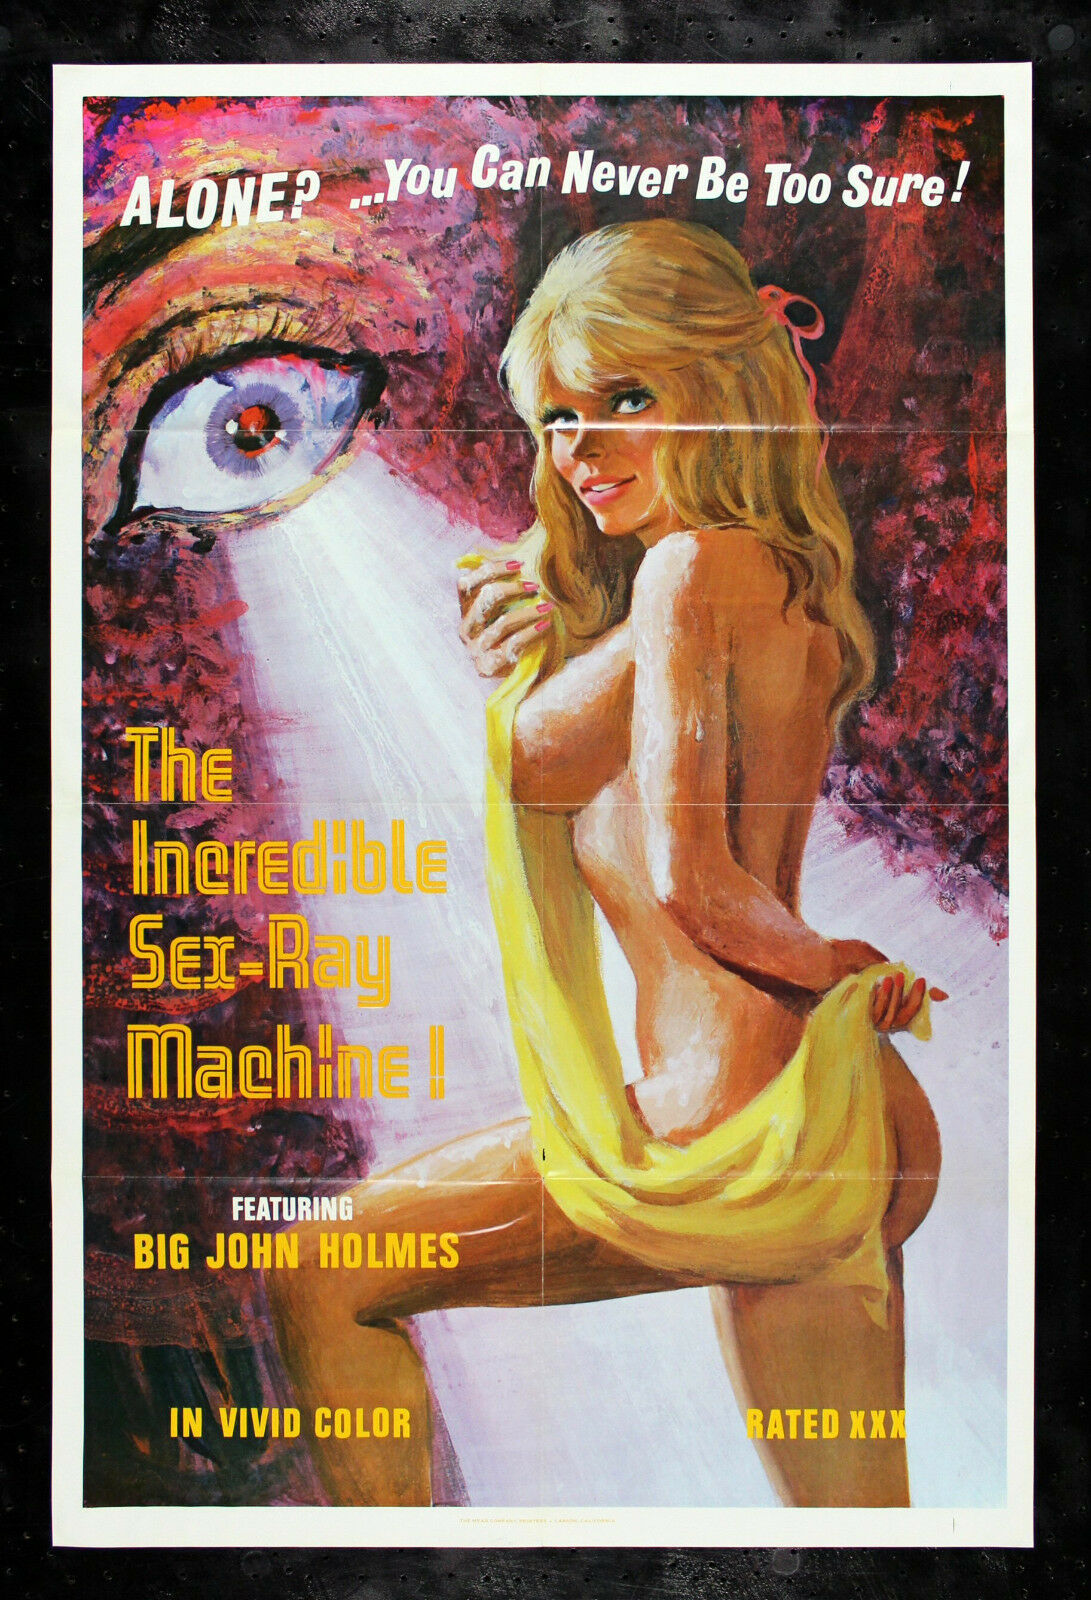 1972 Porn incredible sex ray machine * naked blonde girl adult xxx porn movie poster  1972